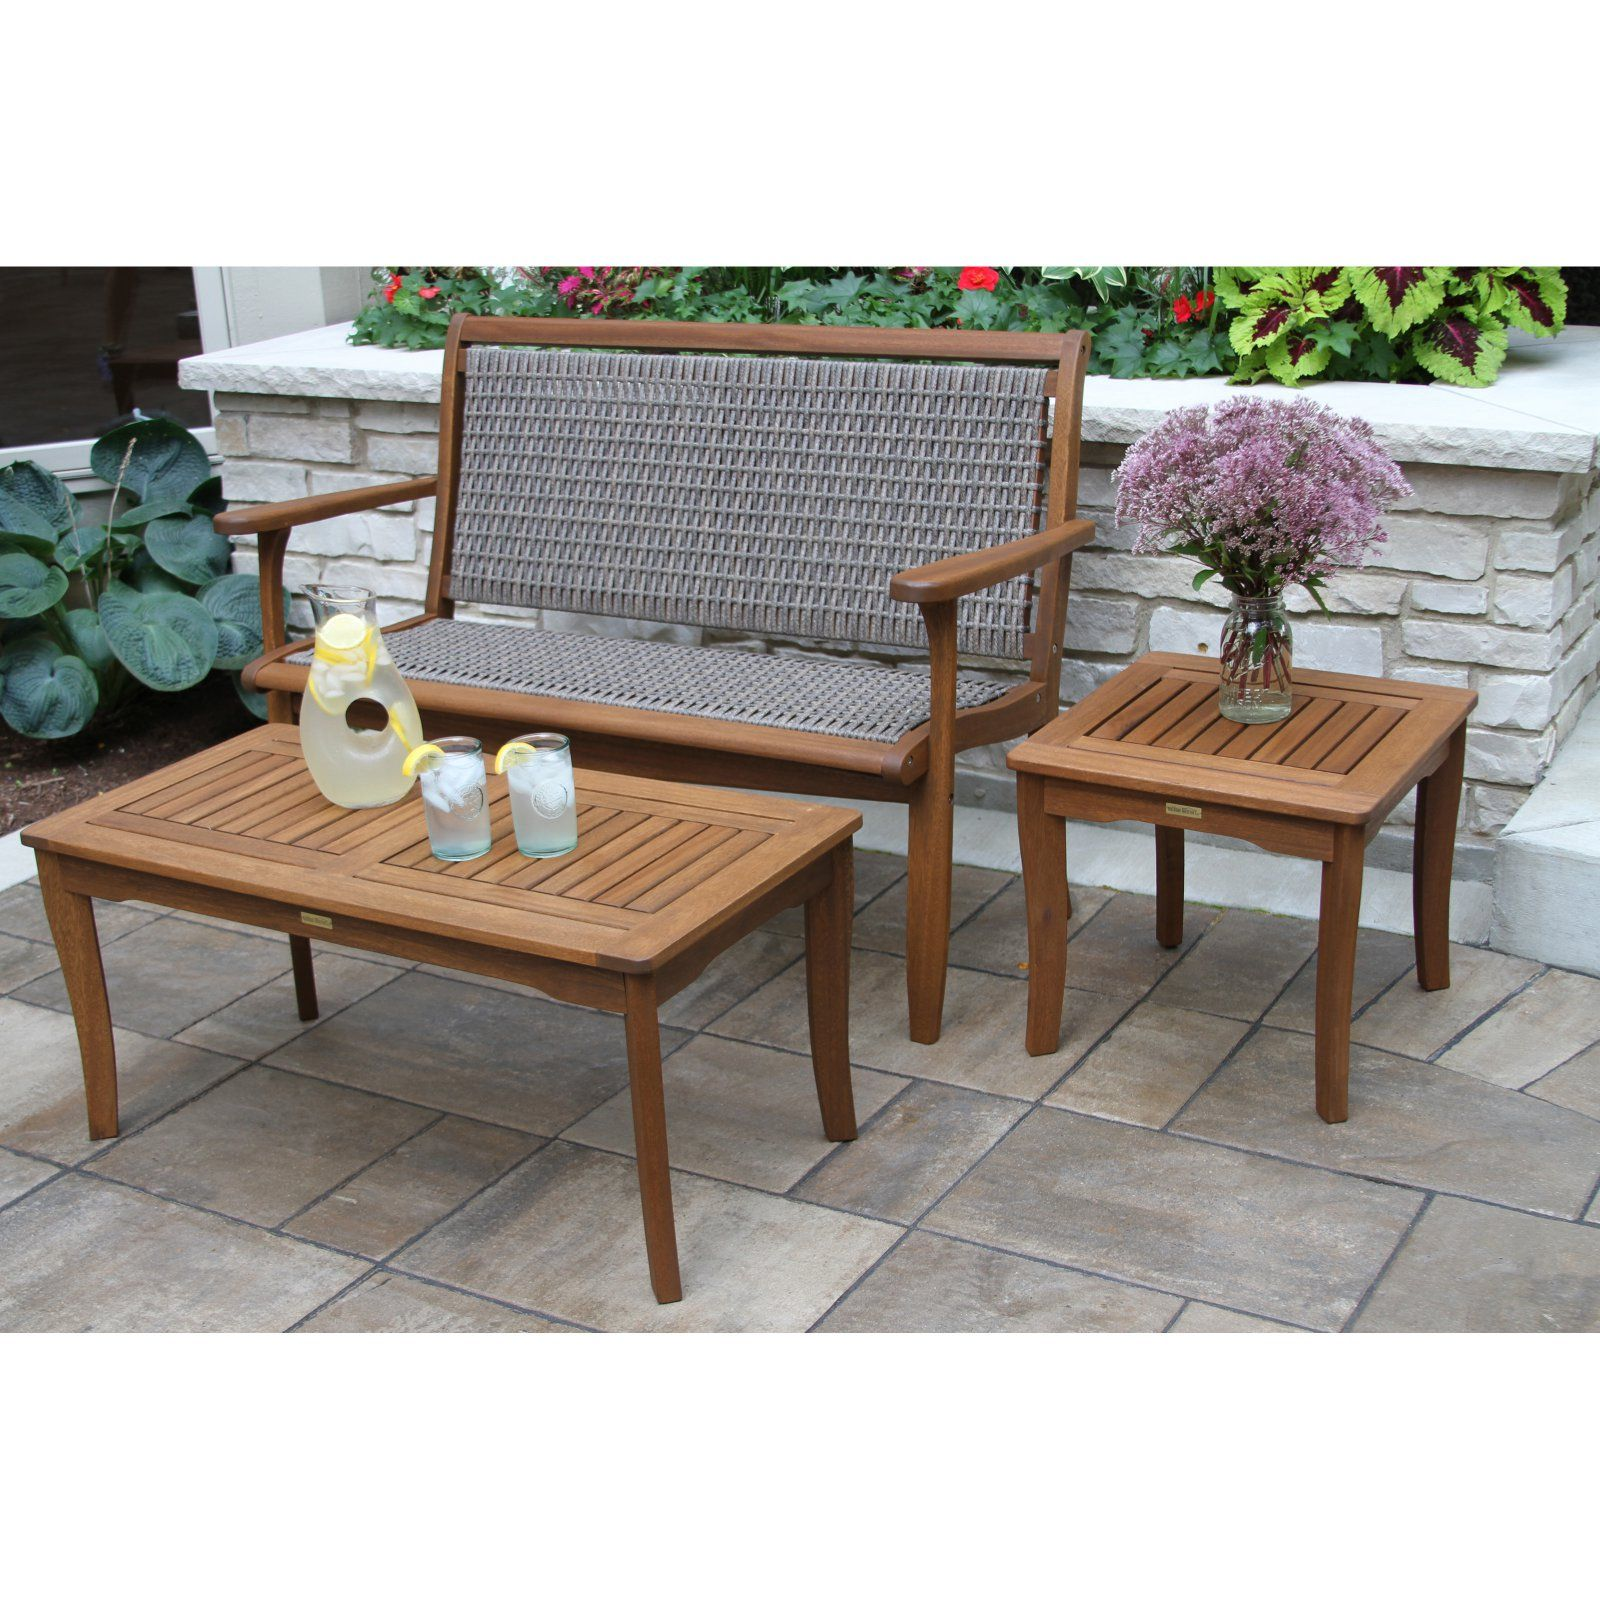 Outdoor interiors 3 piece patio conversation set brown